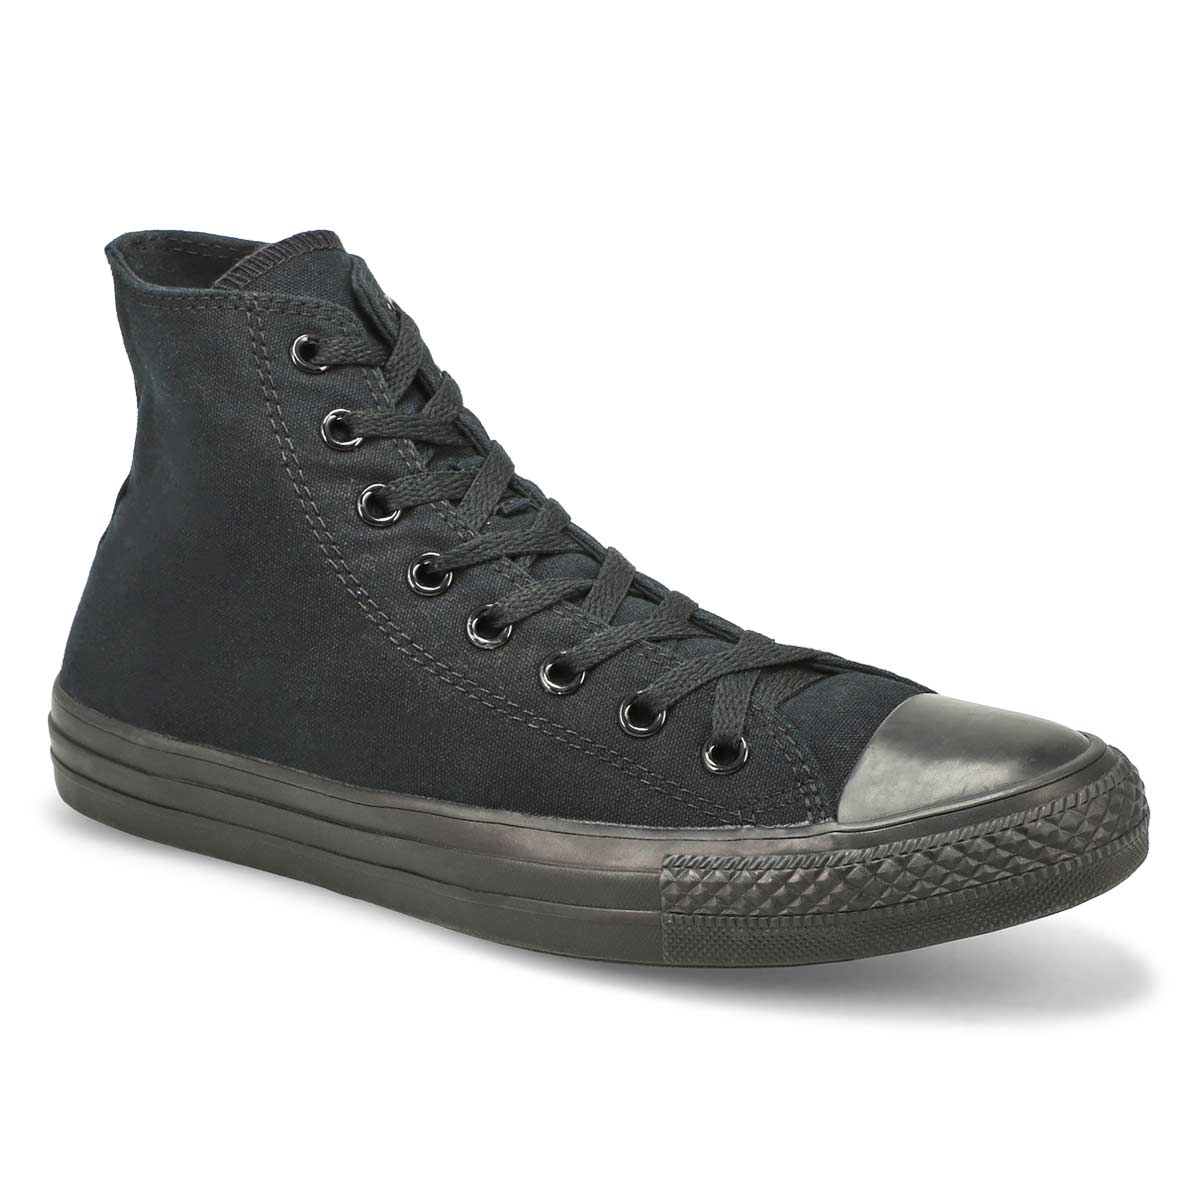 Men's CHUCK TAYLOR CORE HI black sneakers